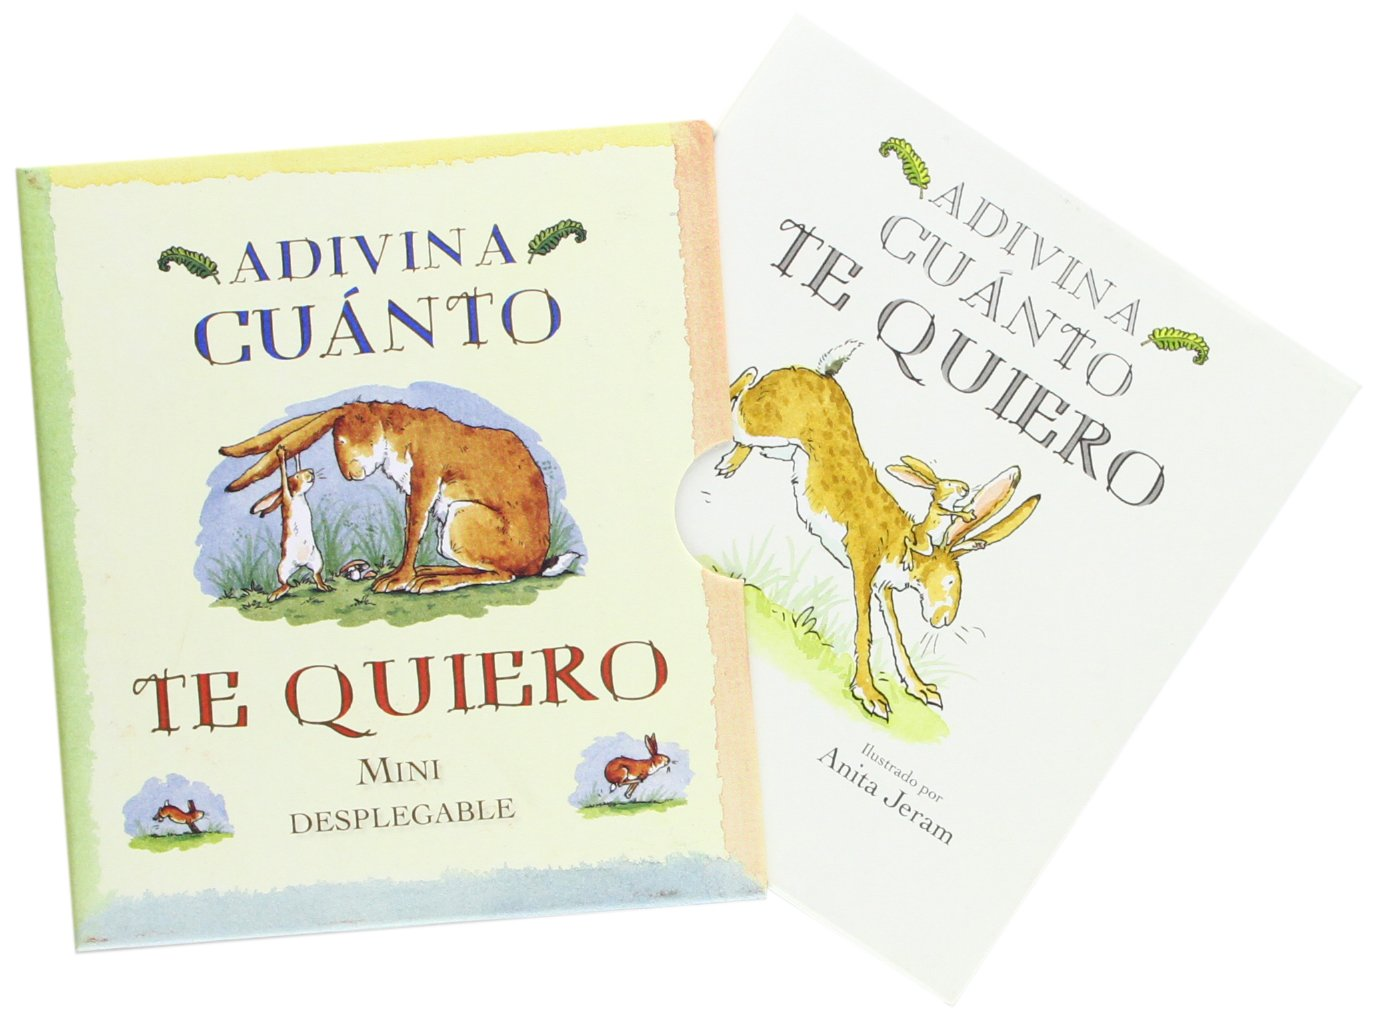 Adivina Cuanto Te Quiero. Mini Desplegable: Amazon.es: Sam Mc Bratney,  Anita Jeram, Esther Rubio Muñoz: Libros